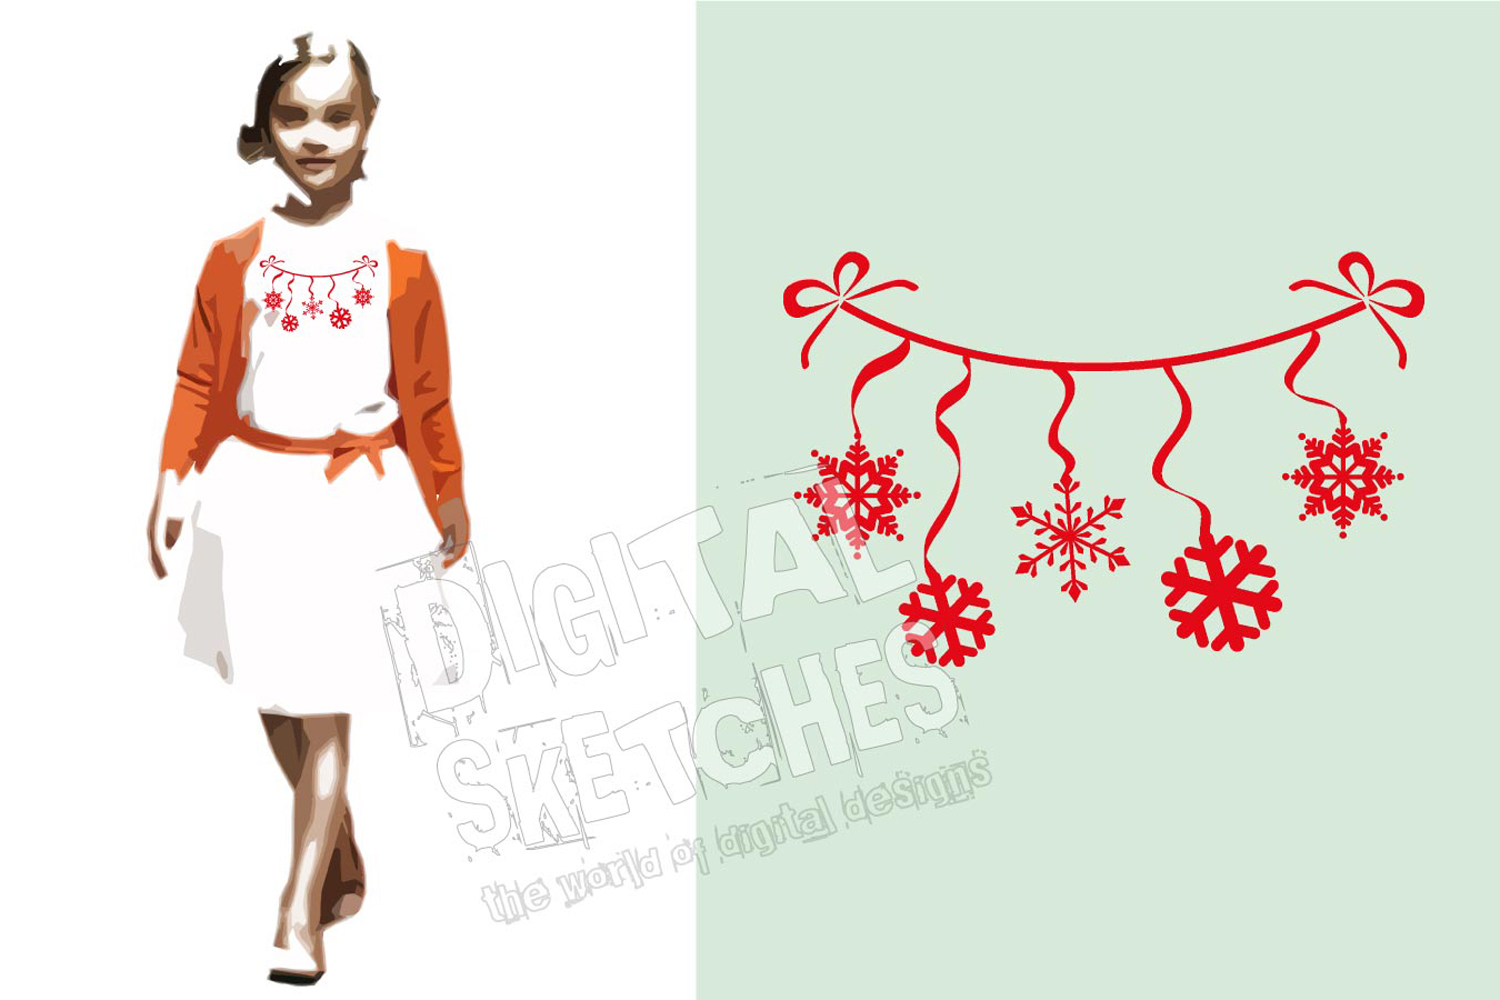 Snowflakes Christmas Cut File Vector Graphics Illustration example image 2